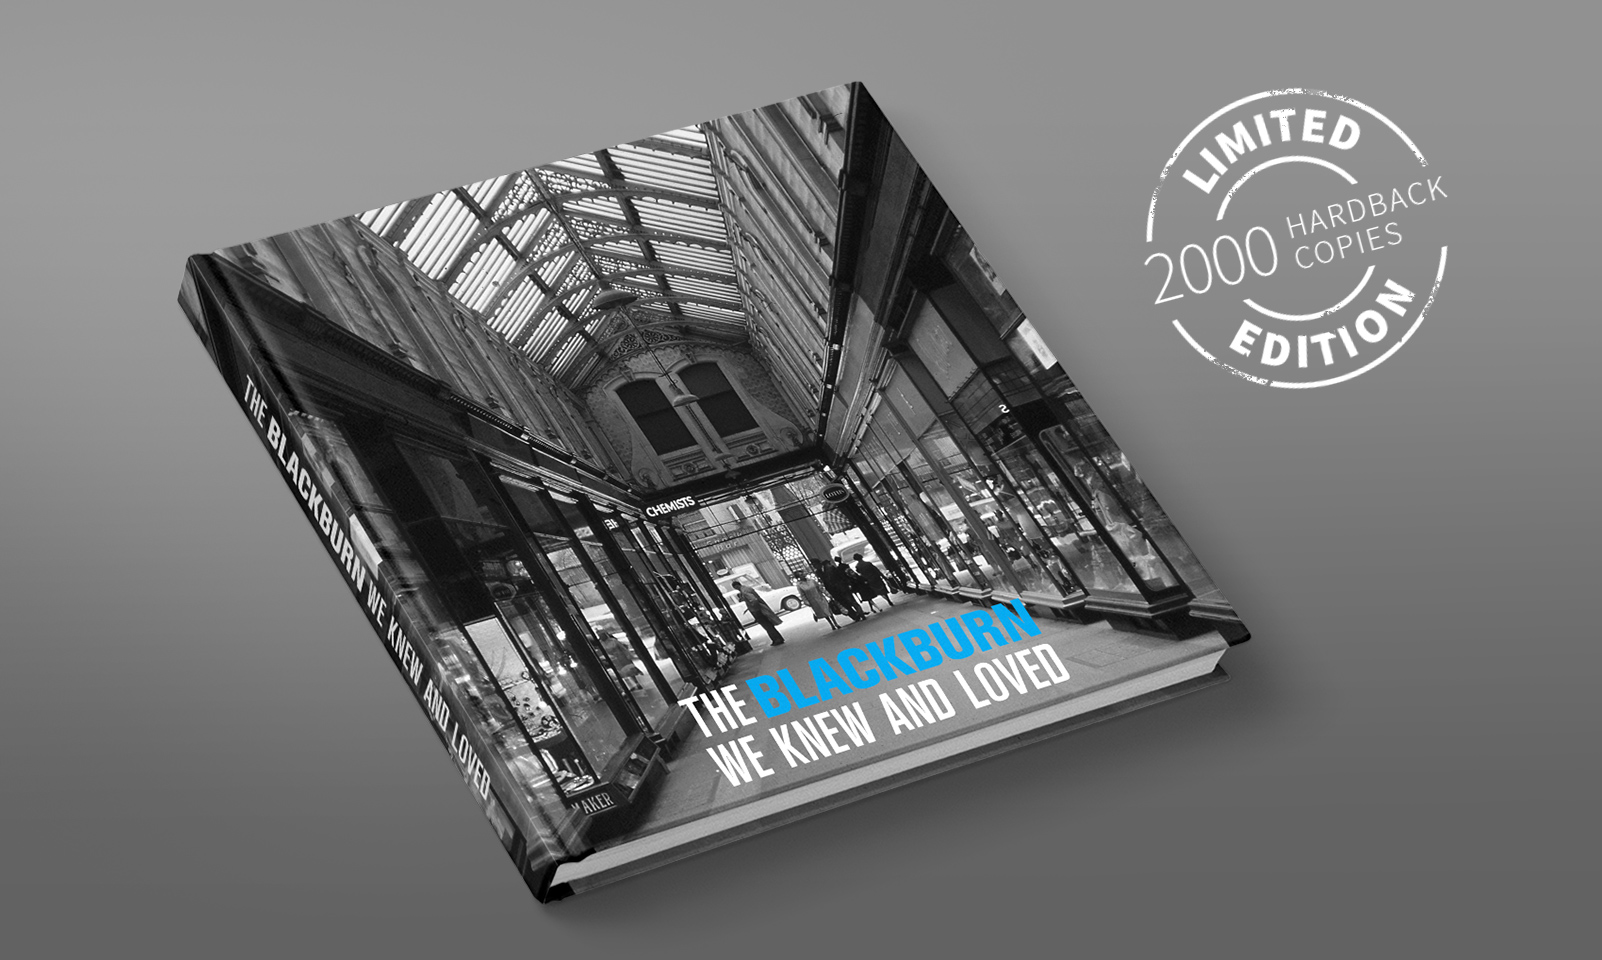 Blackburn photobook out now